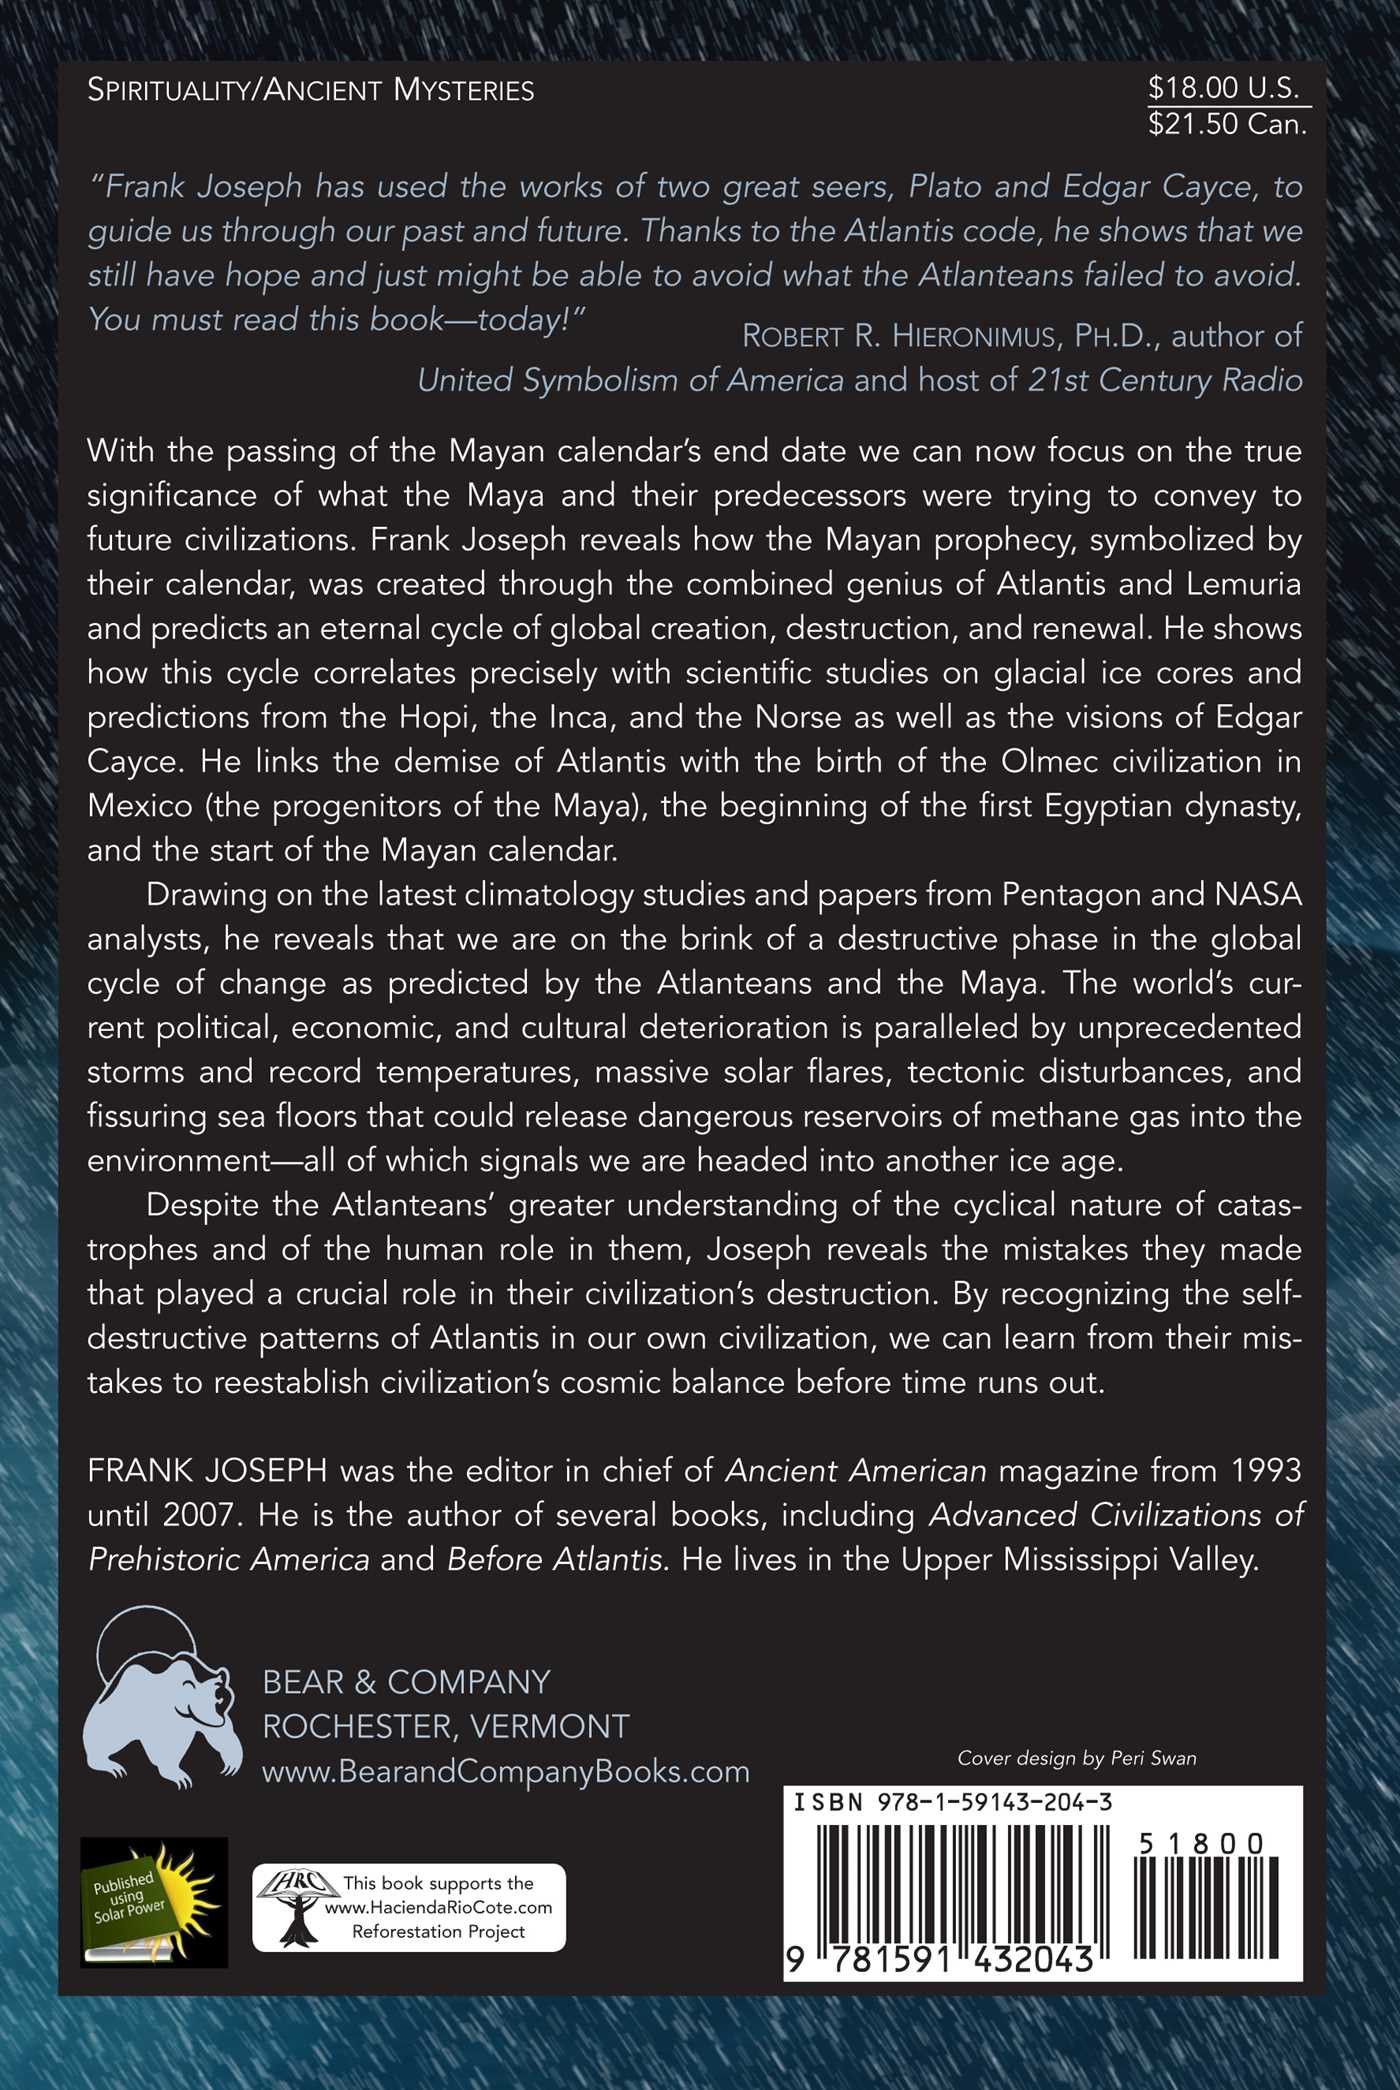 Atlantis and the Coming Ice Age | Book by Frank Joseph